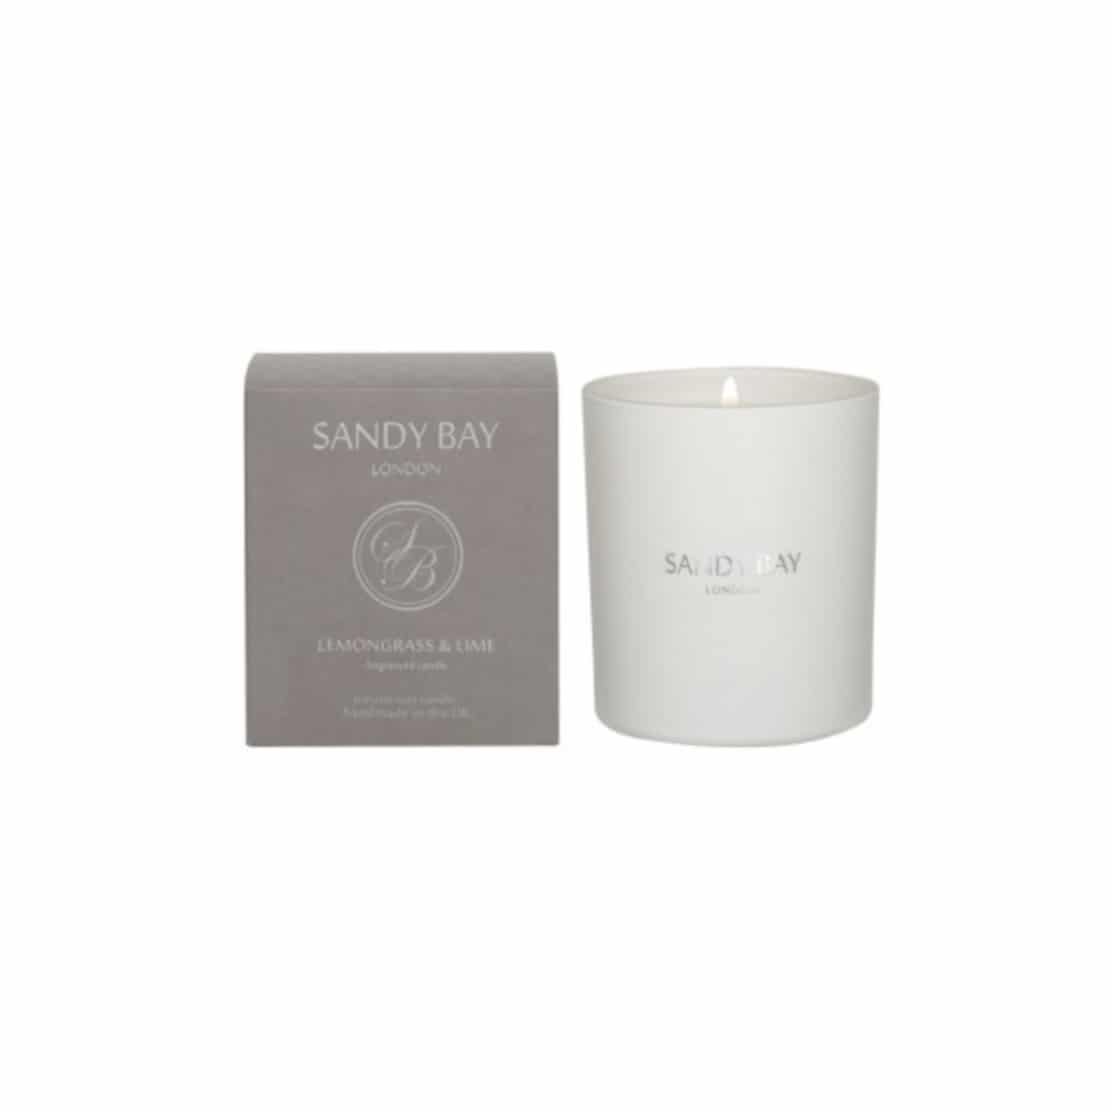 Sandy Bay Lemongrass and Lime 30cl candle